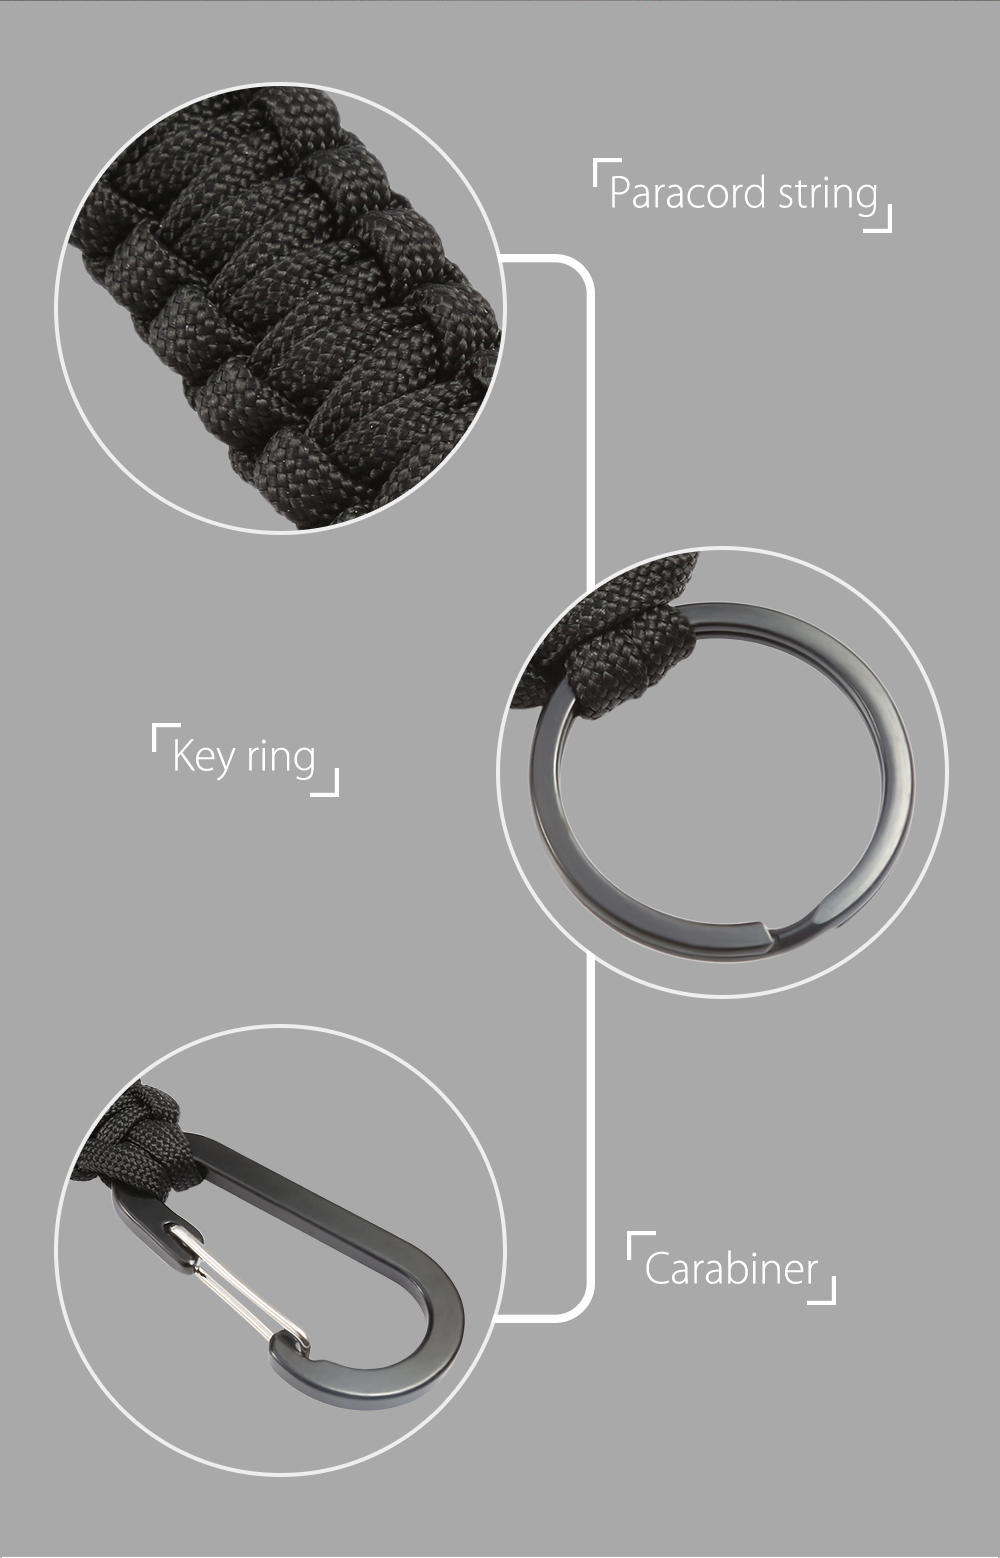 Multifunctional Knitted Emergency Survival Paracord Bracelet with Carabiner Key Ring